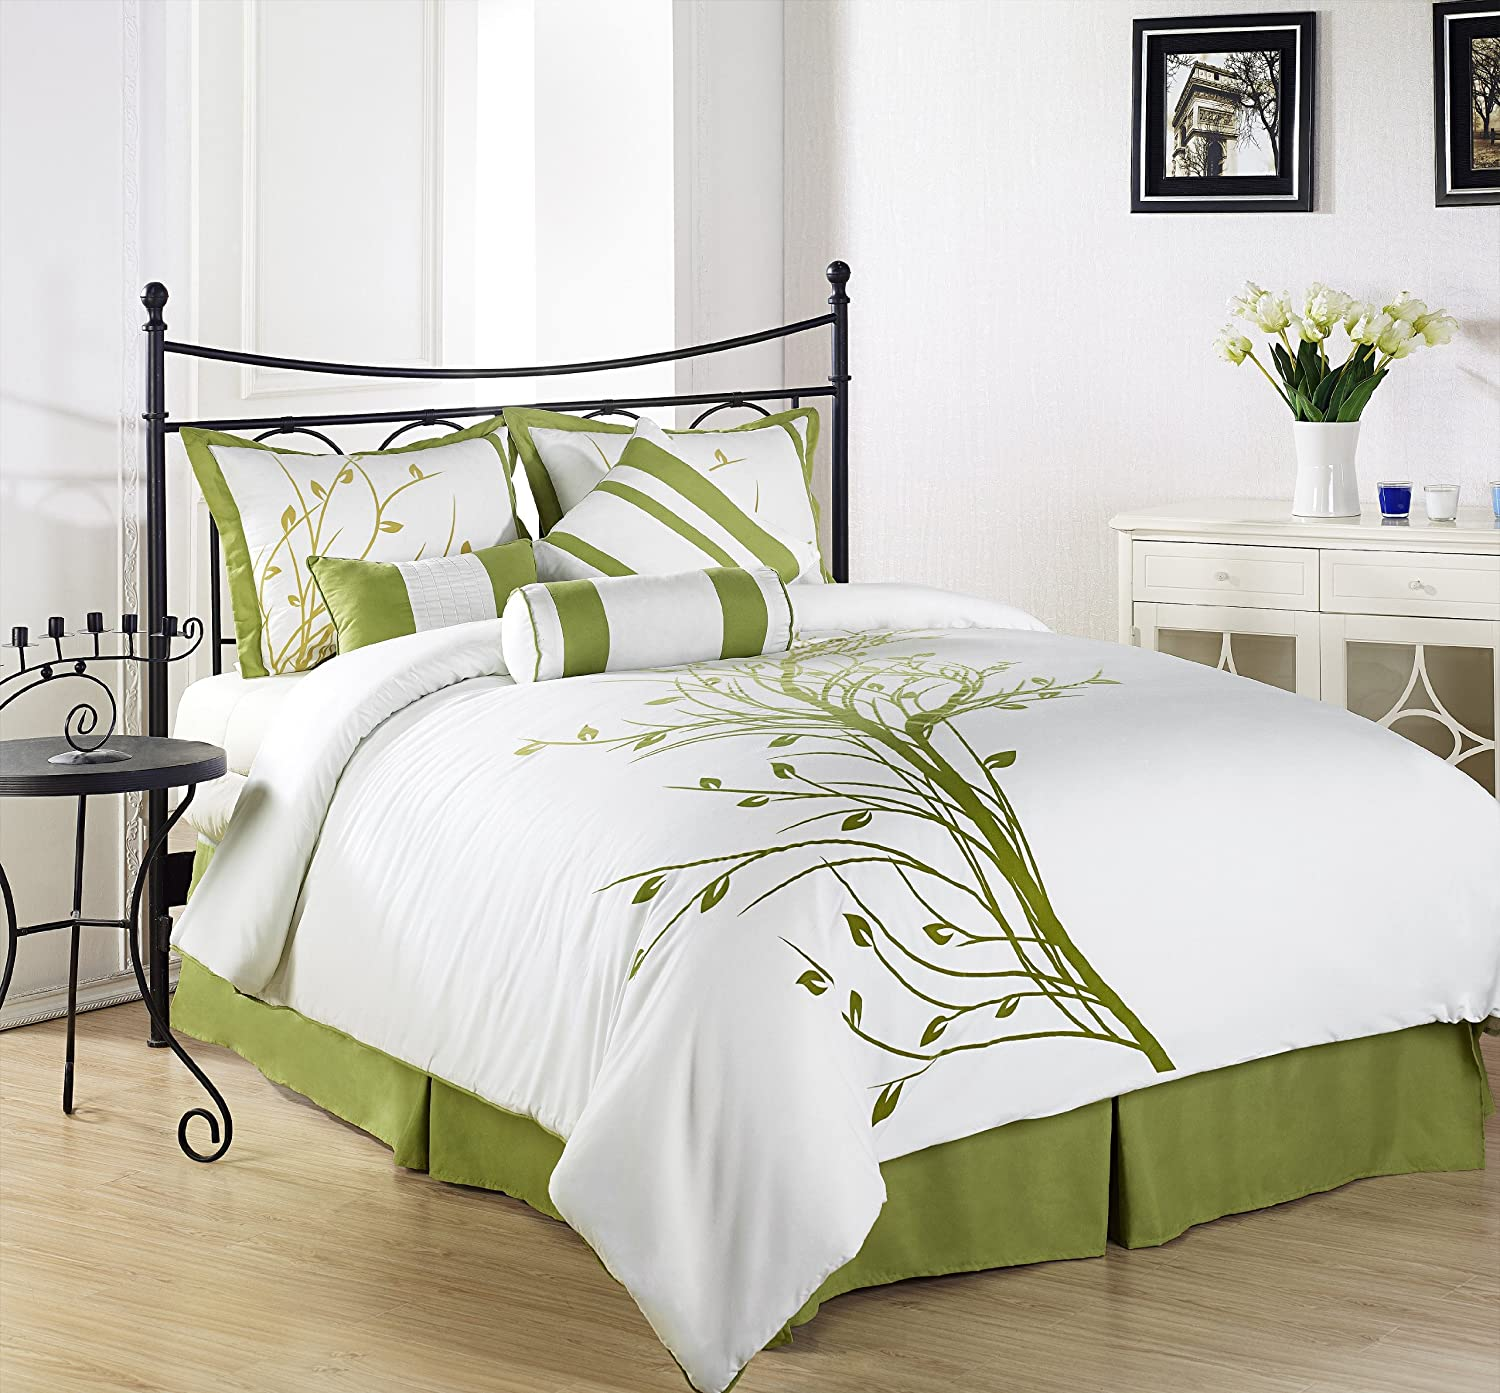 10 Fabulously Green Bedding Sets